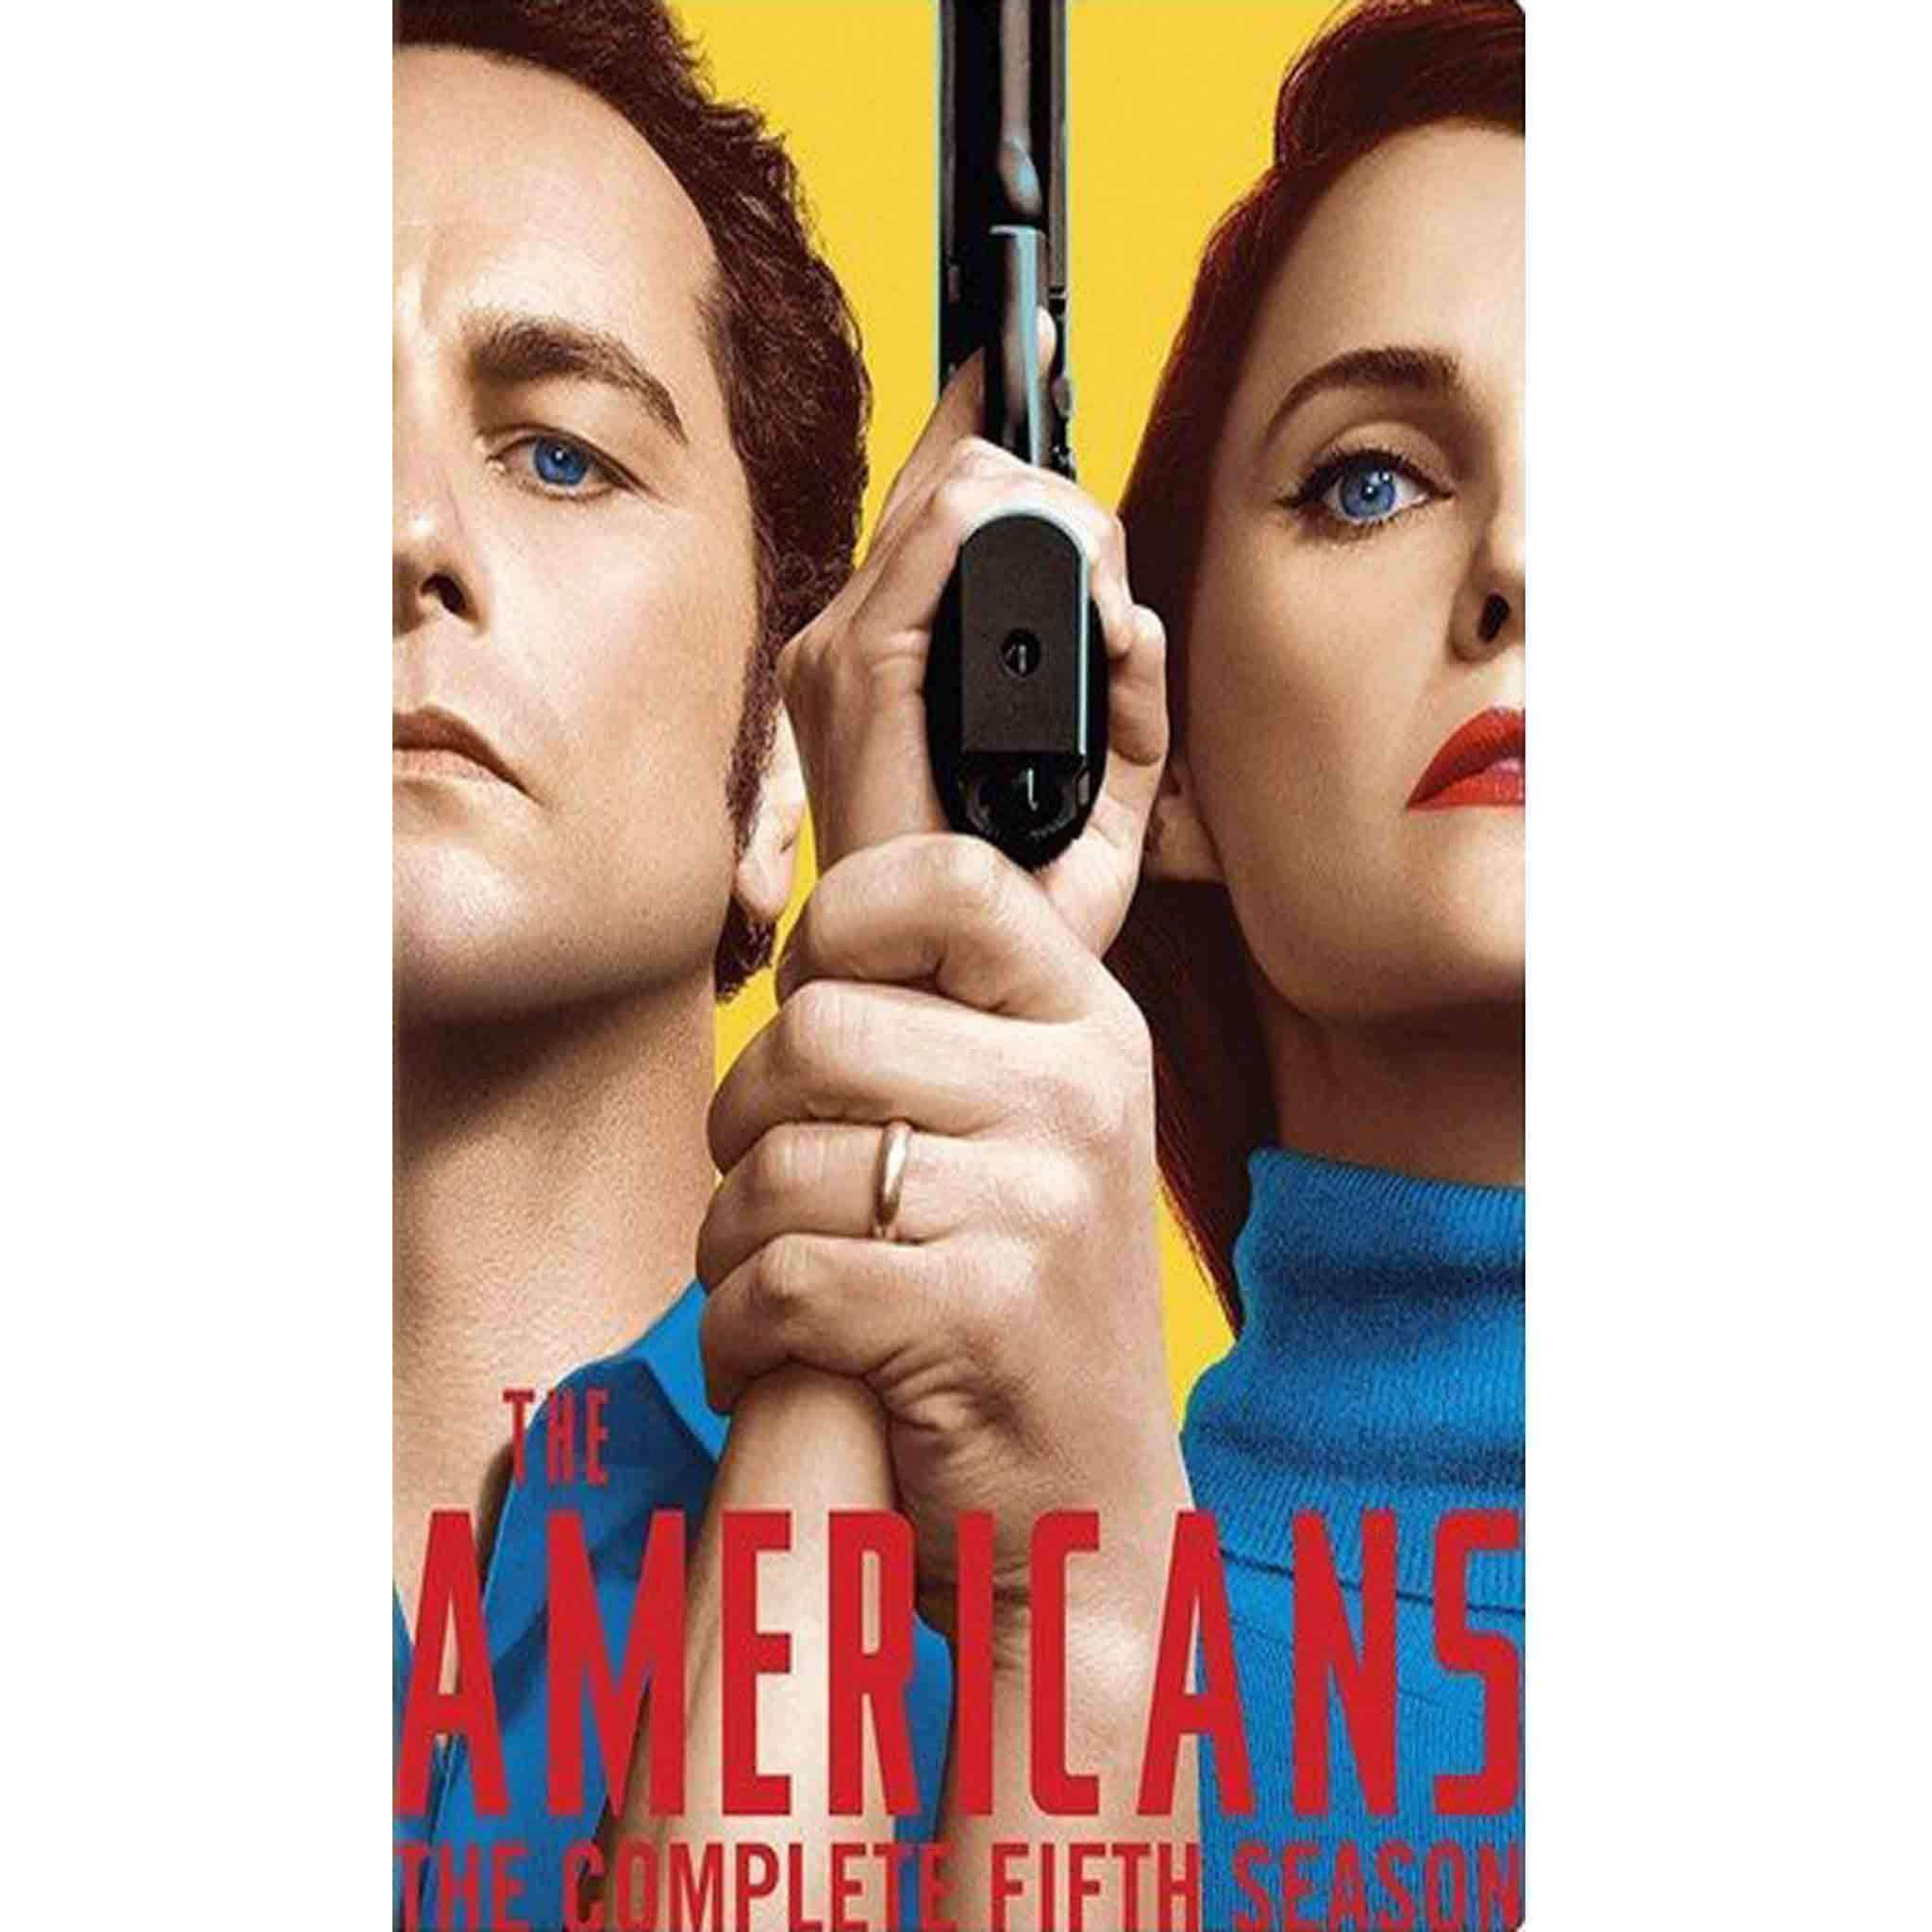 The Americans Season 5 (DVD) - DVDsHQ